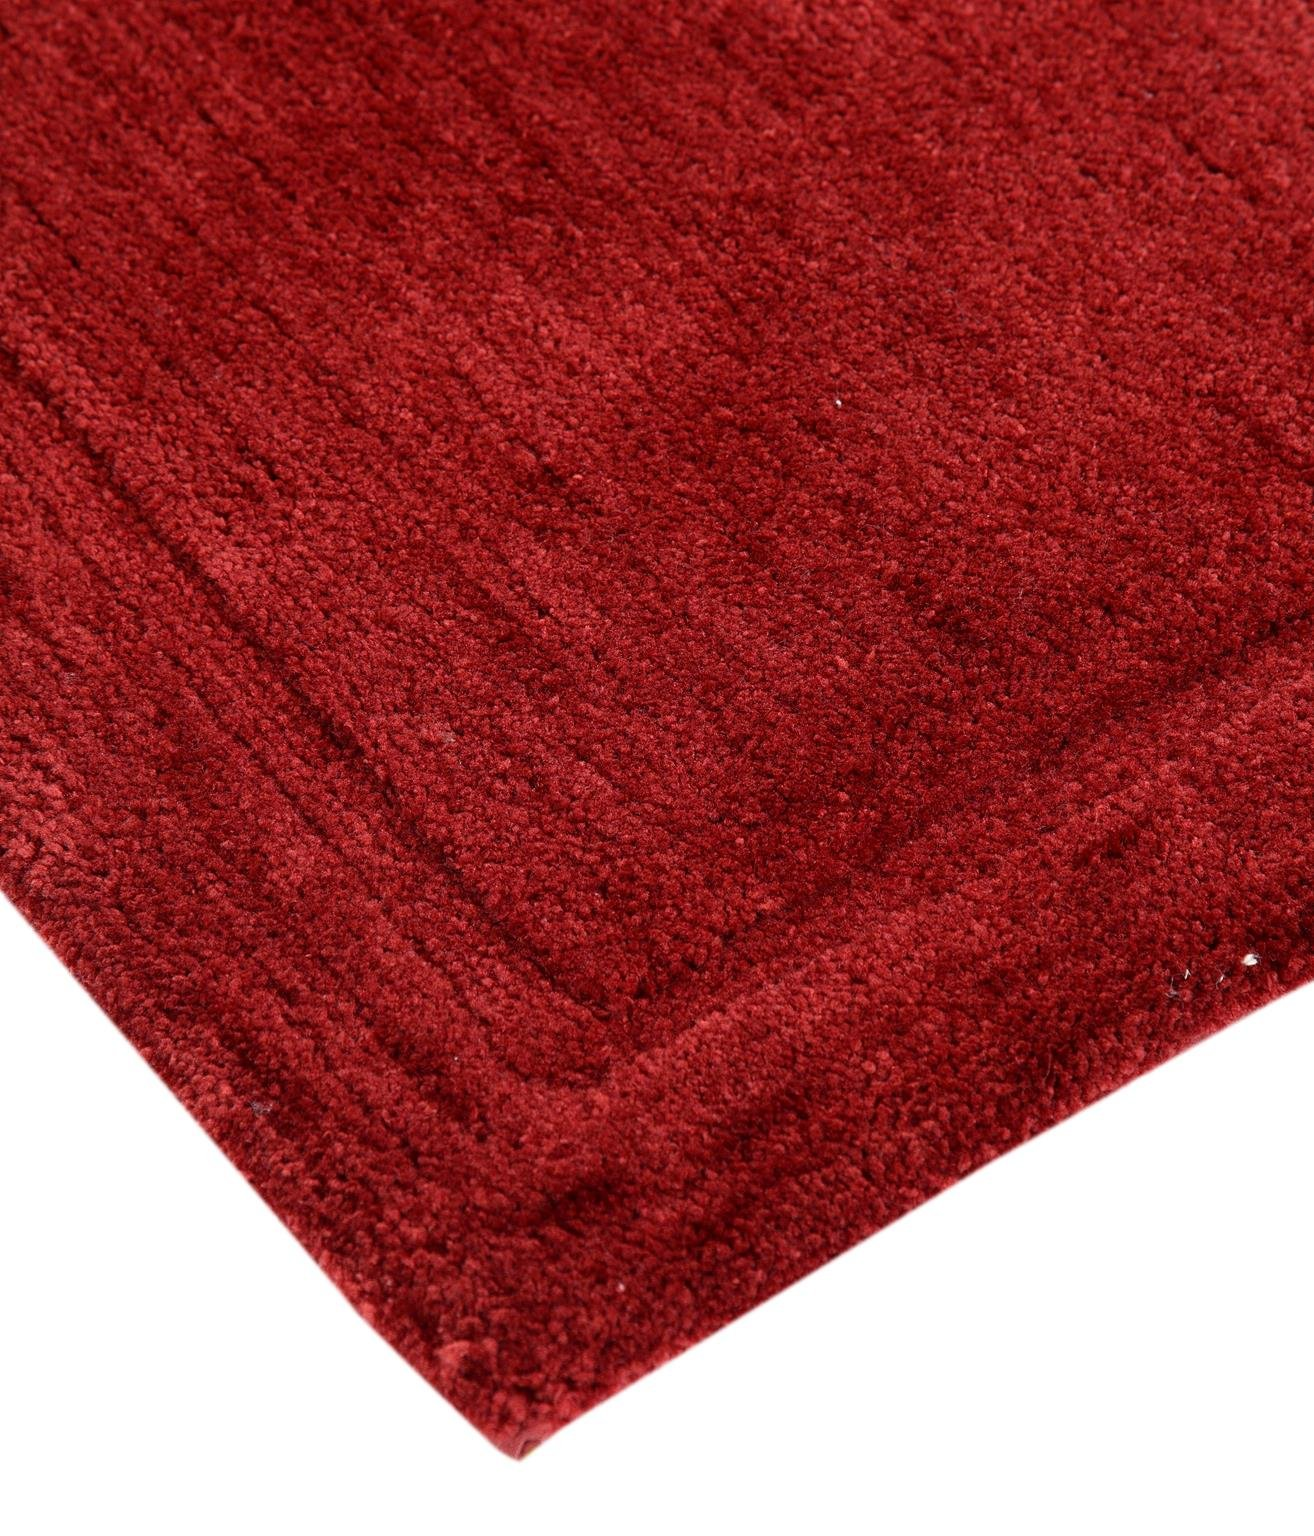 WARISI - Track Collection - Solids microfiber Bathroom, Bedroom Rug, 34 x 21 inches (Marsala) by WARISI (Image #3)